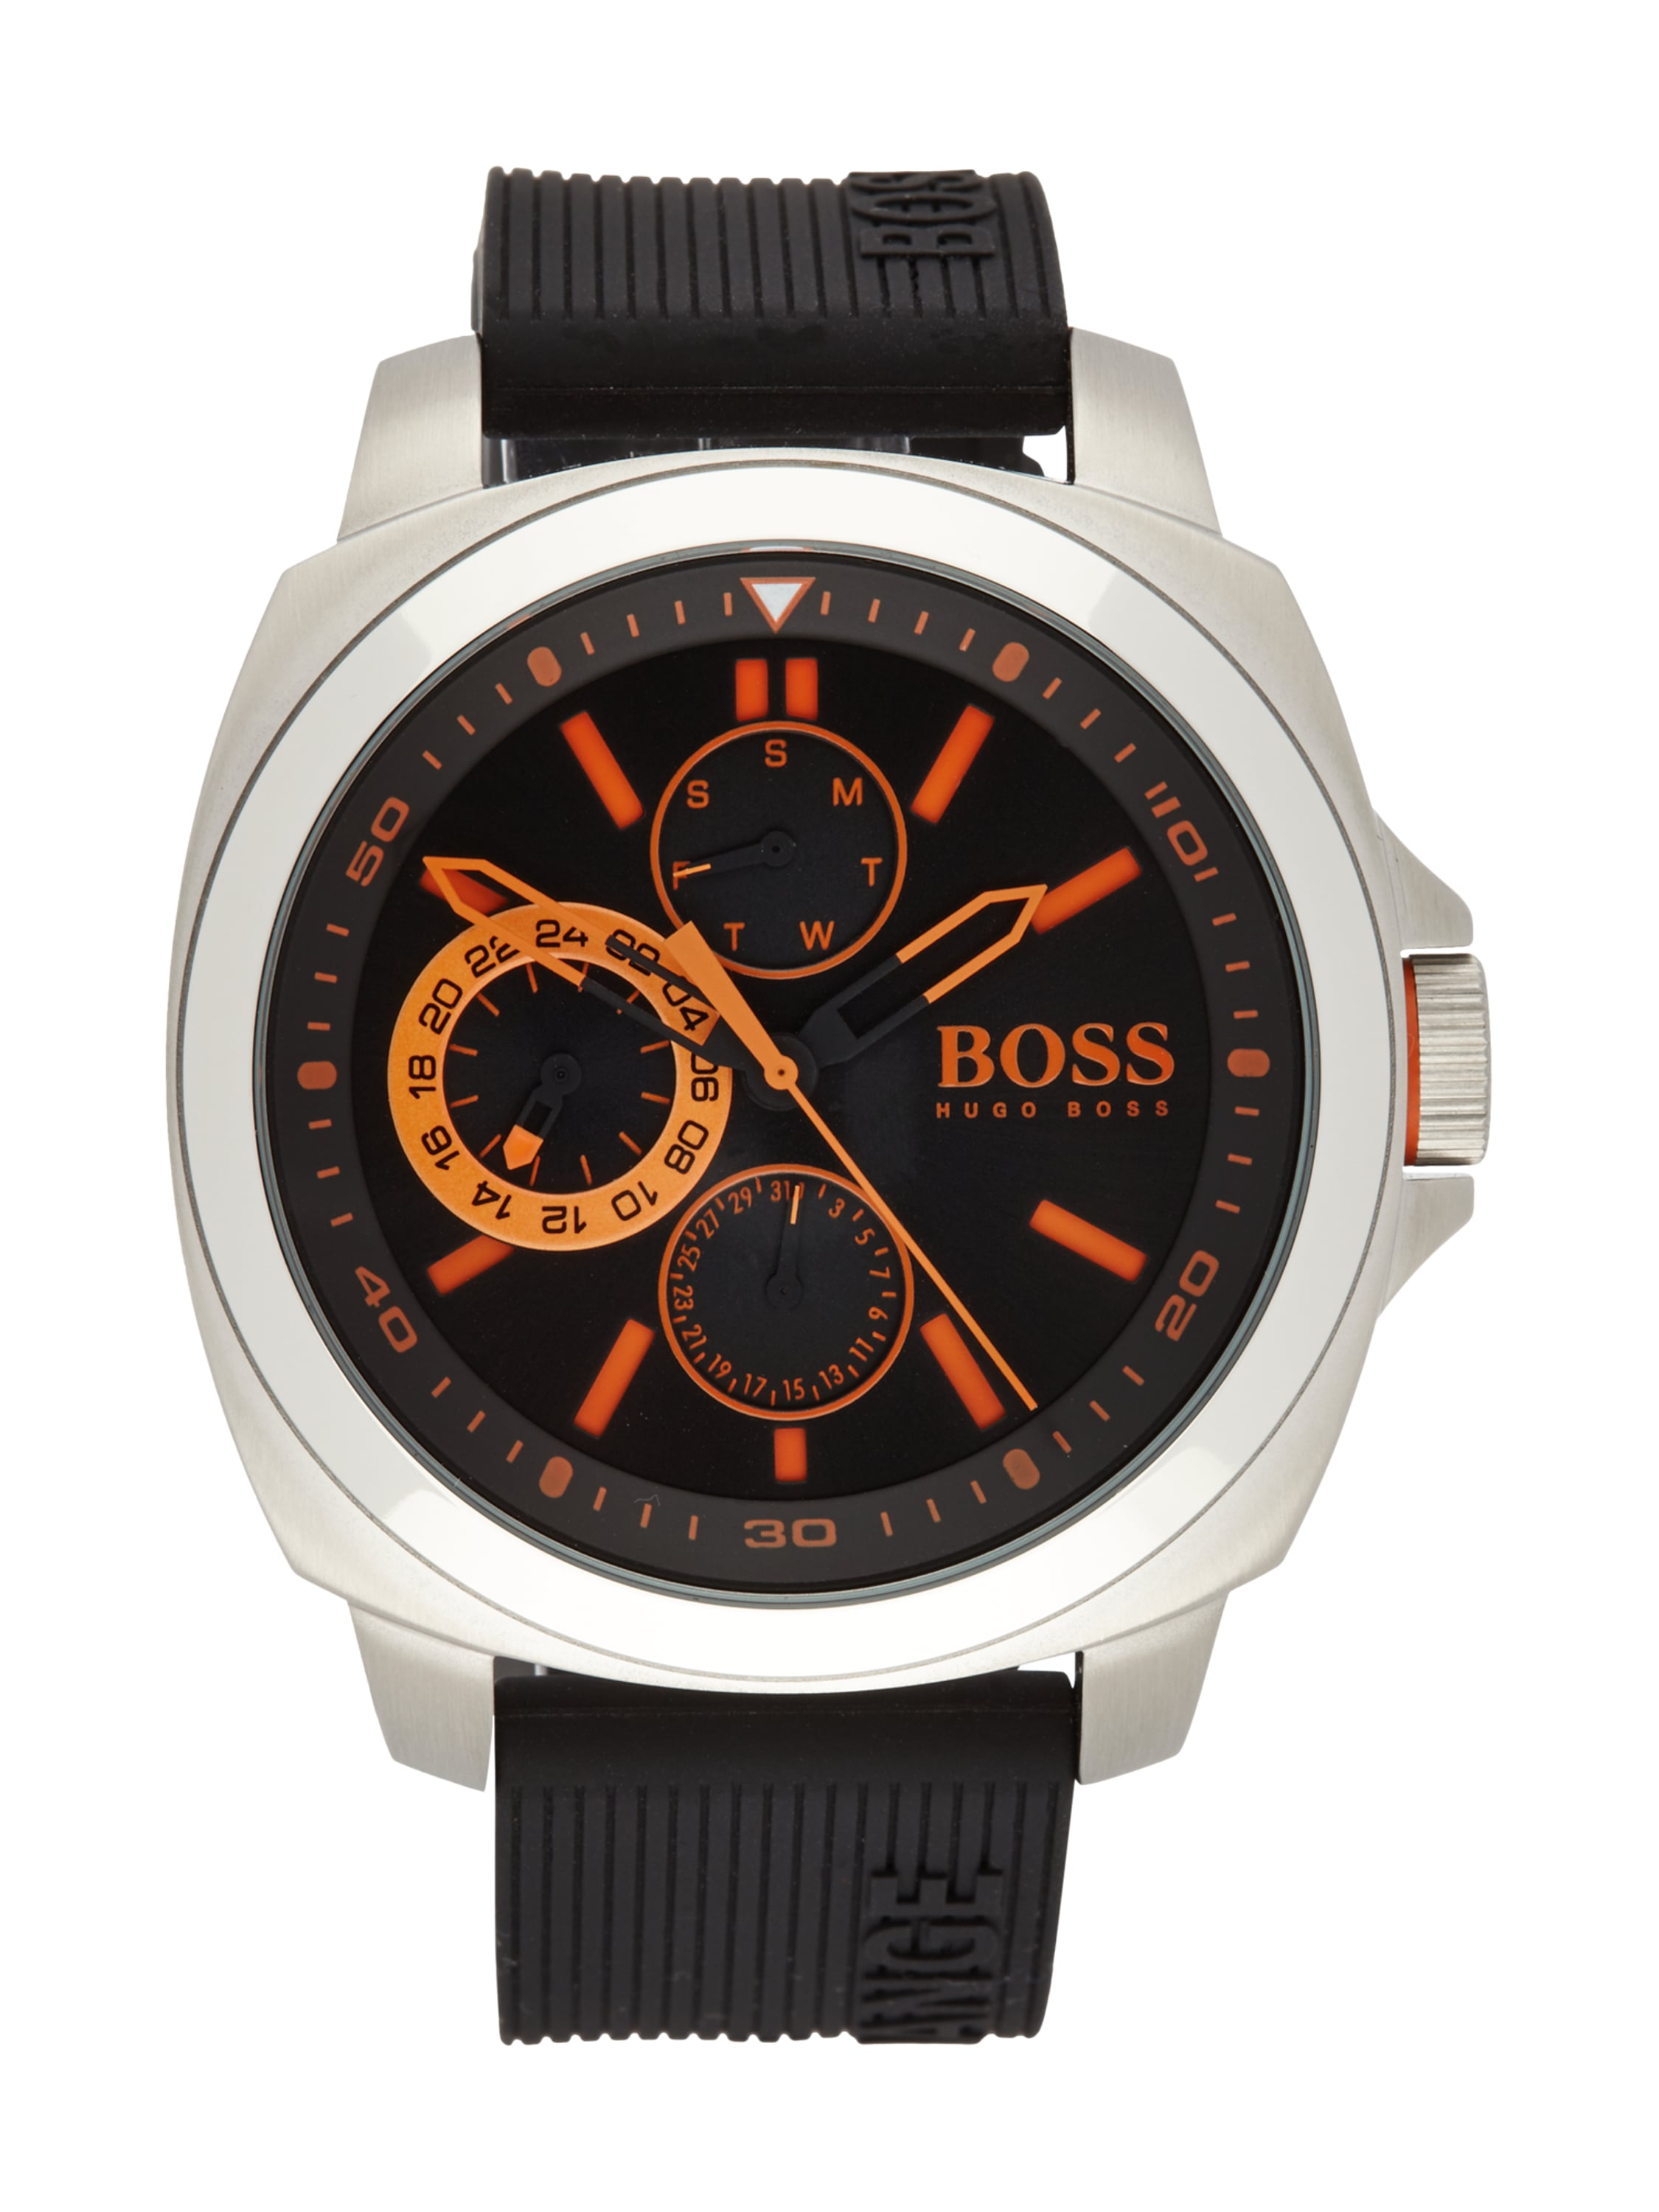 boss orange uhr mit silikonarmband in grau schwarz. Black Bedroom Furniture Sets. Home Design Ideas